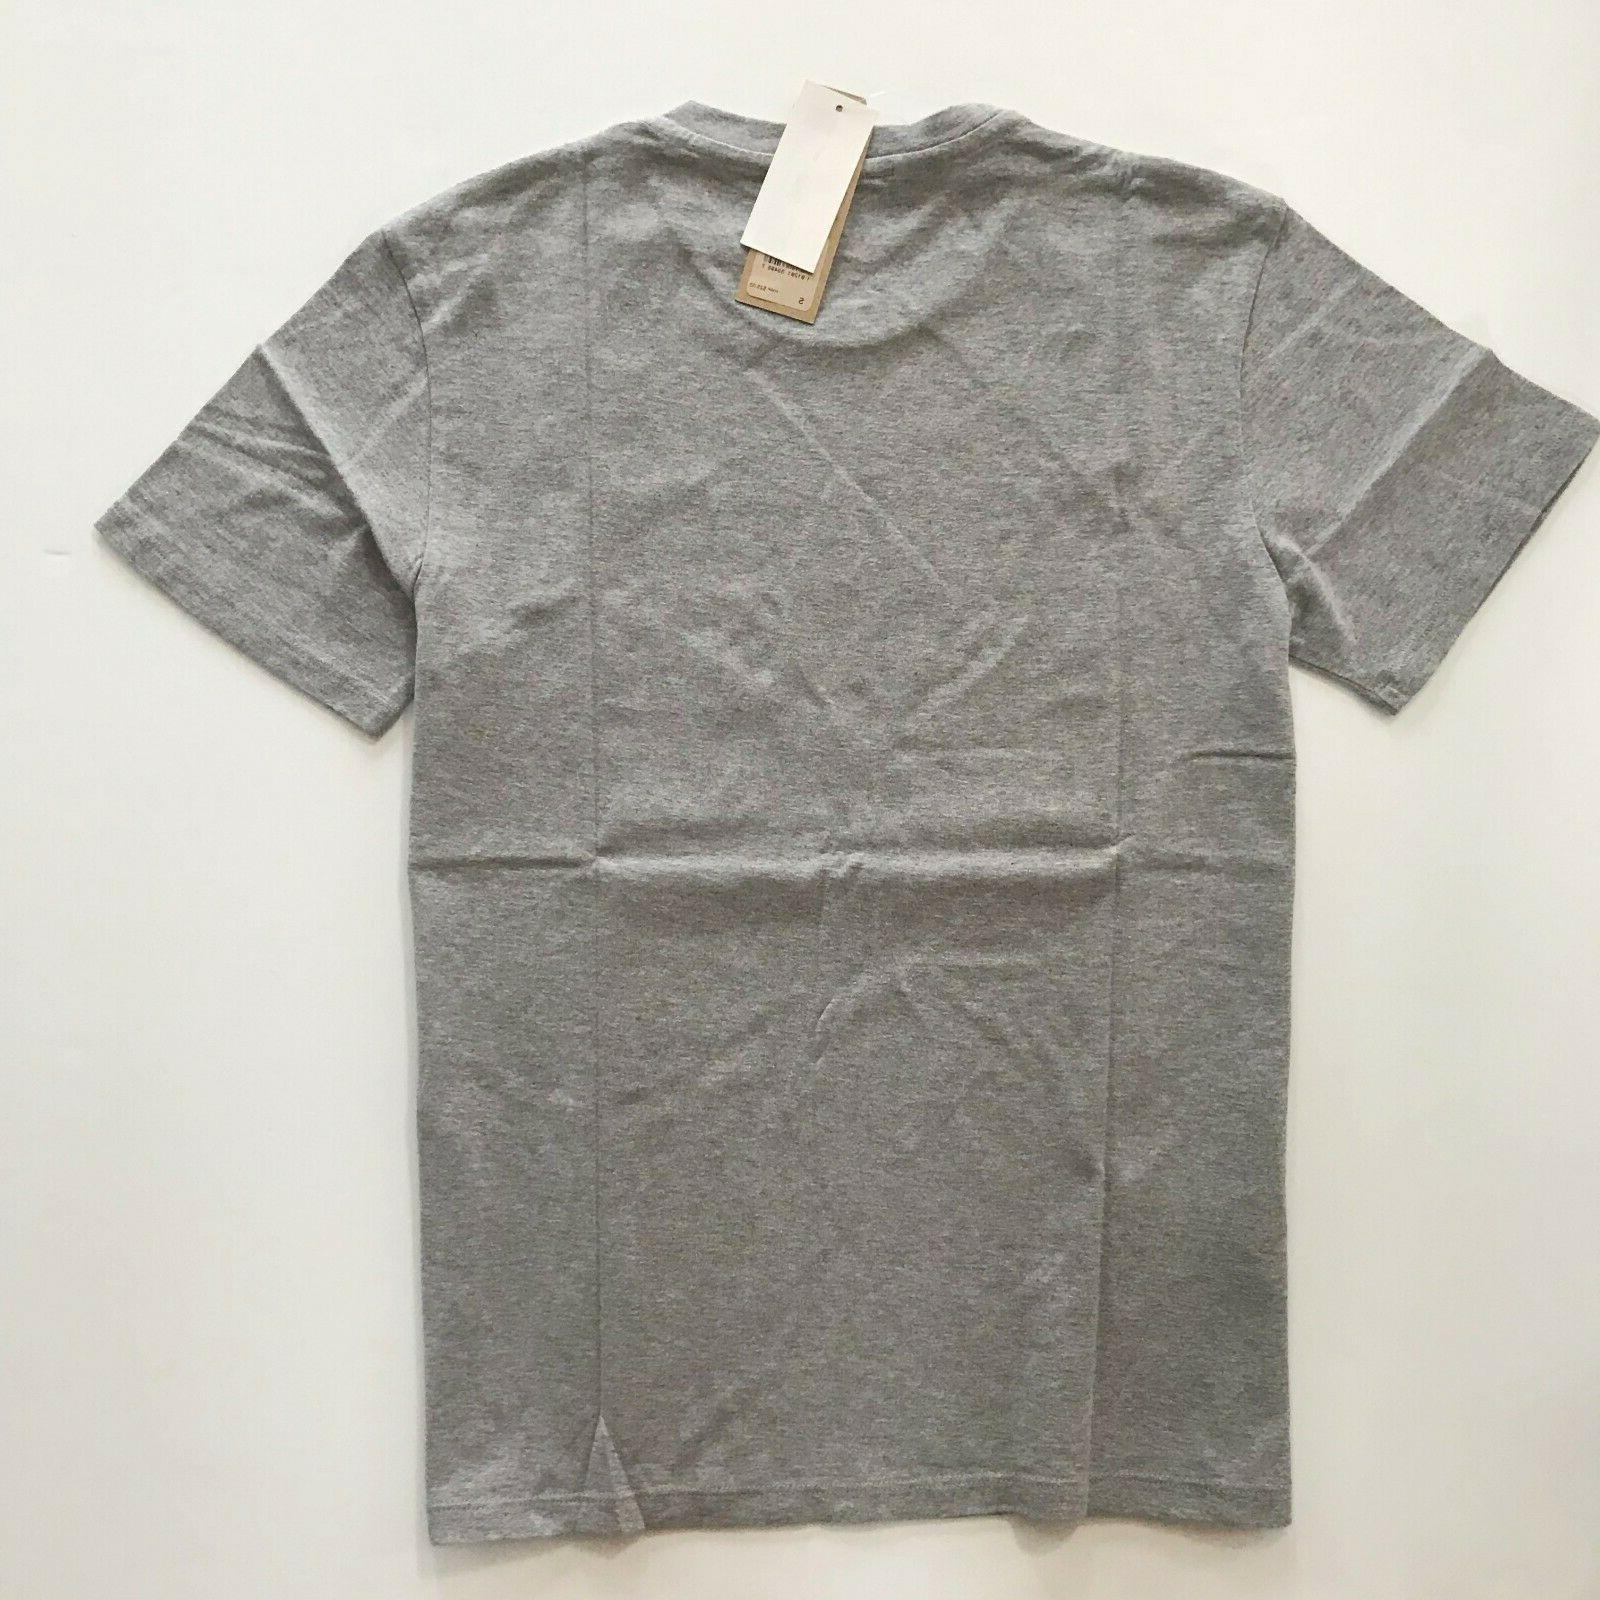 NWT Levi's Logo Graphic-Print T-Shirt 2 All Sizes